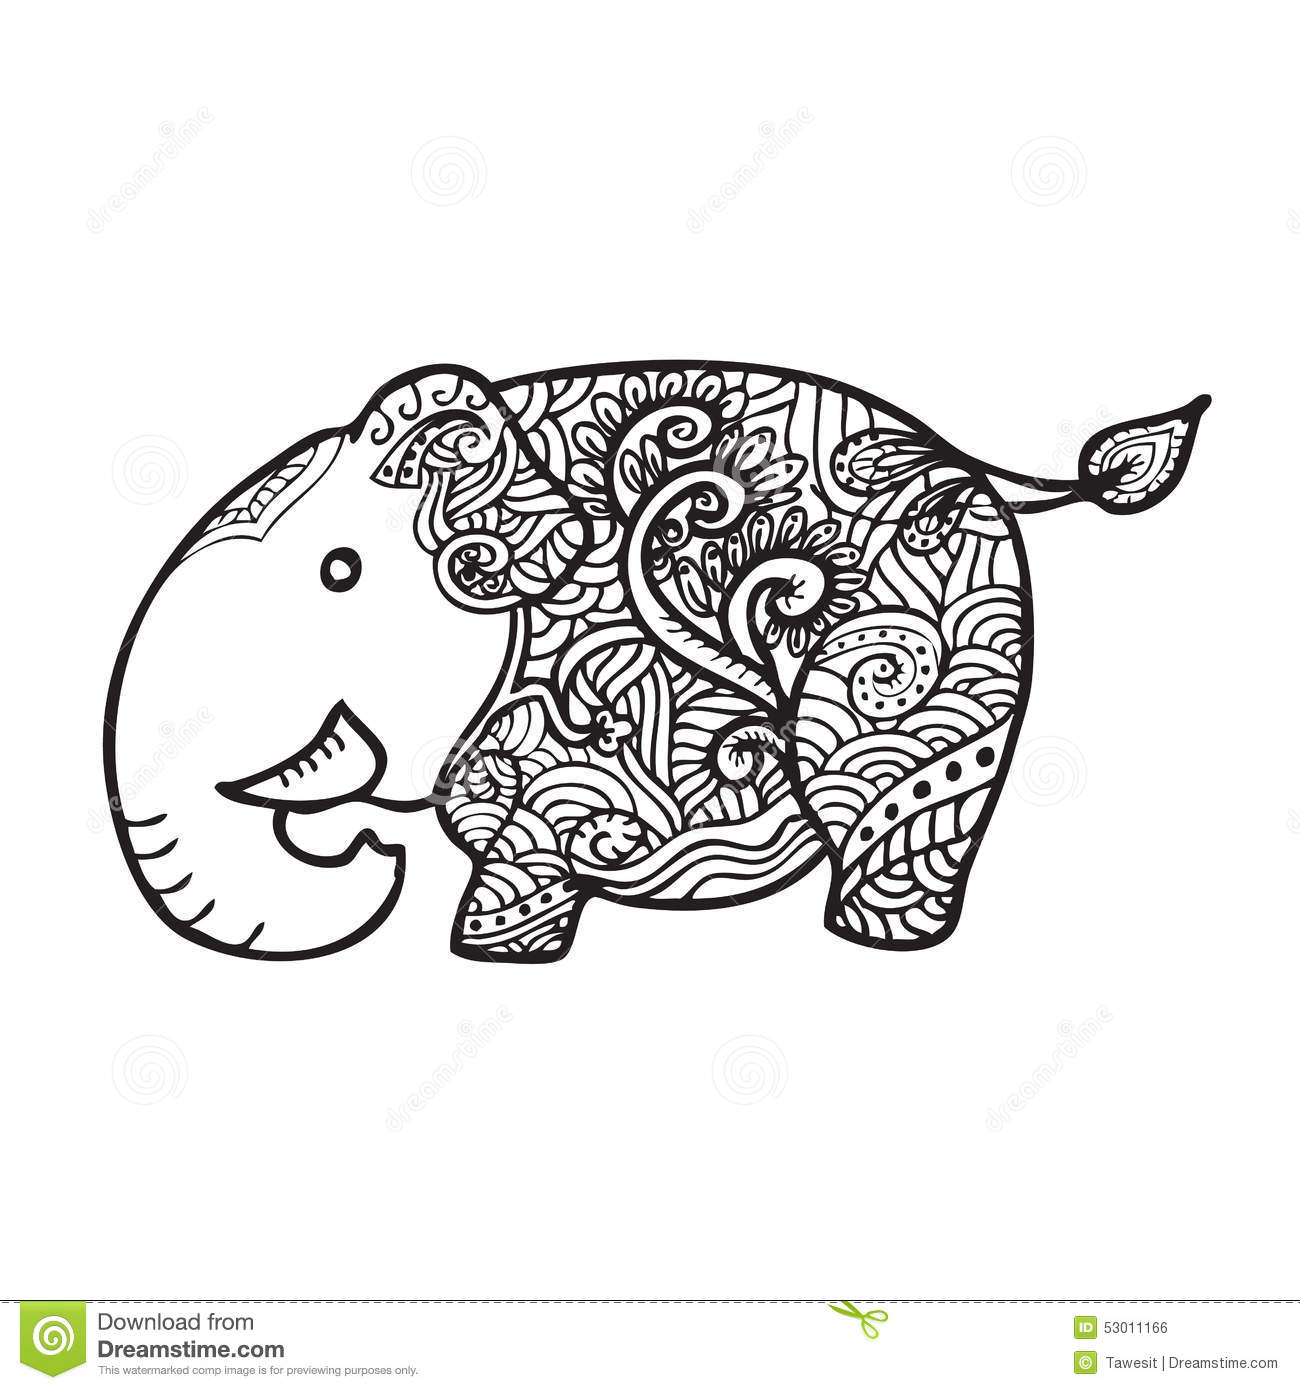 Elephant pattern doodle stock vector. Illustration of india - 53011166